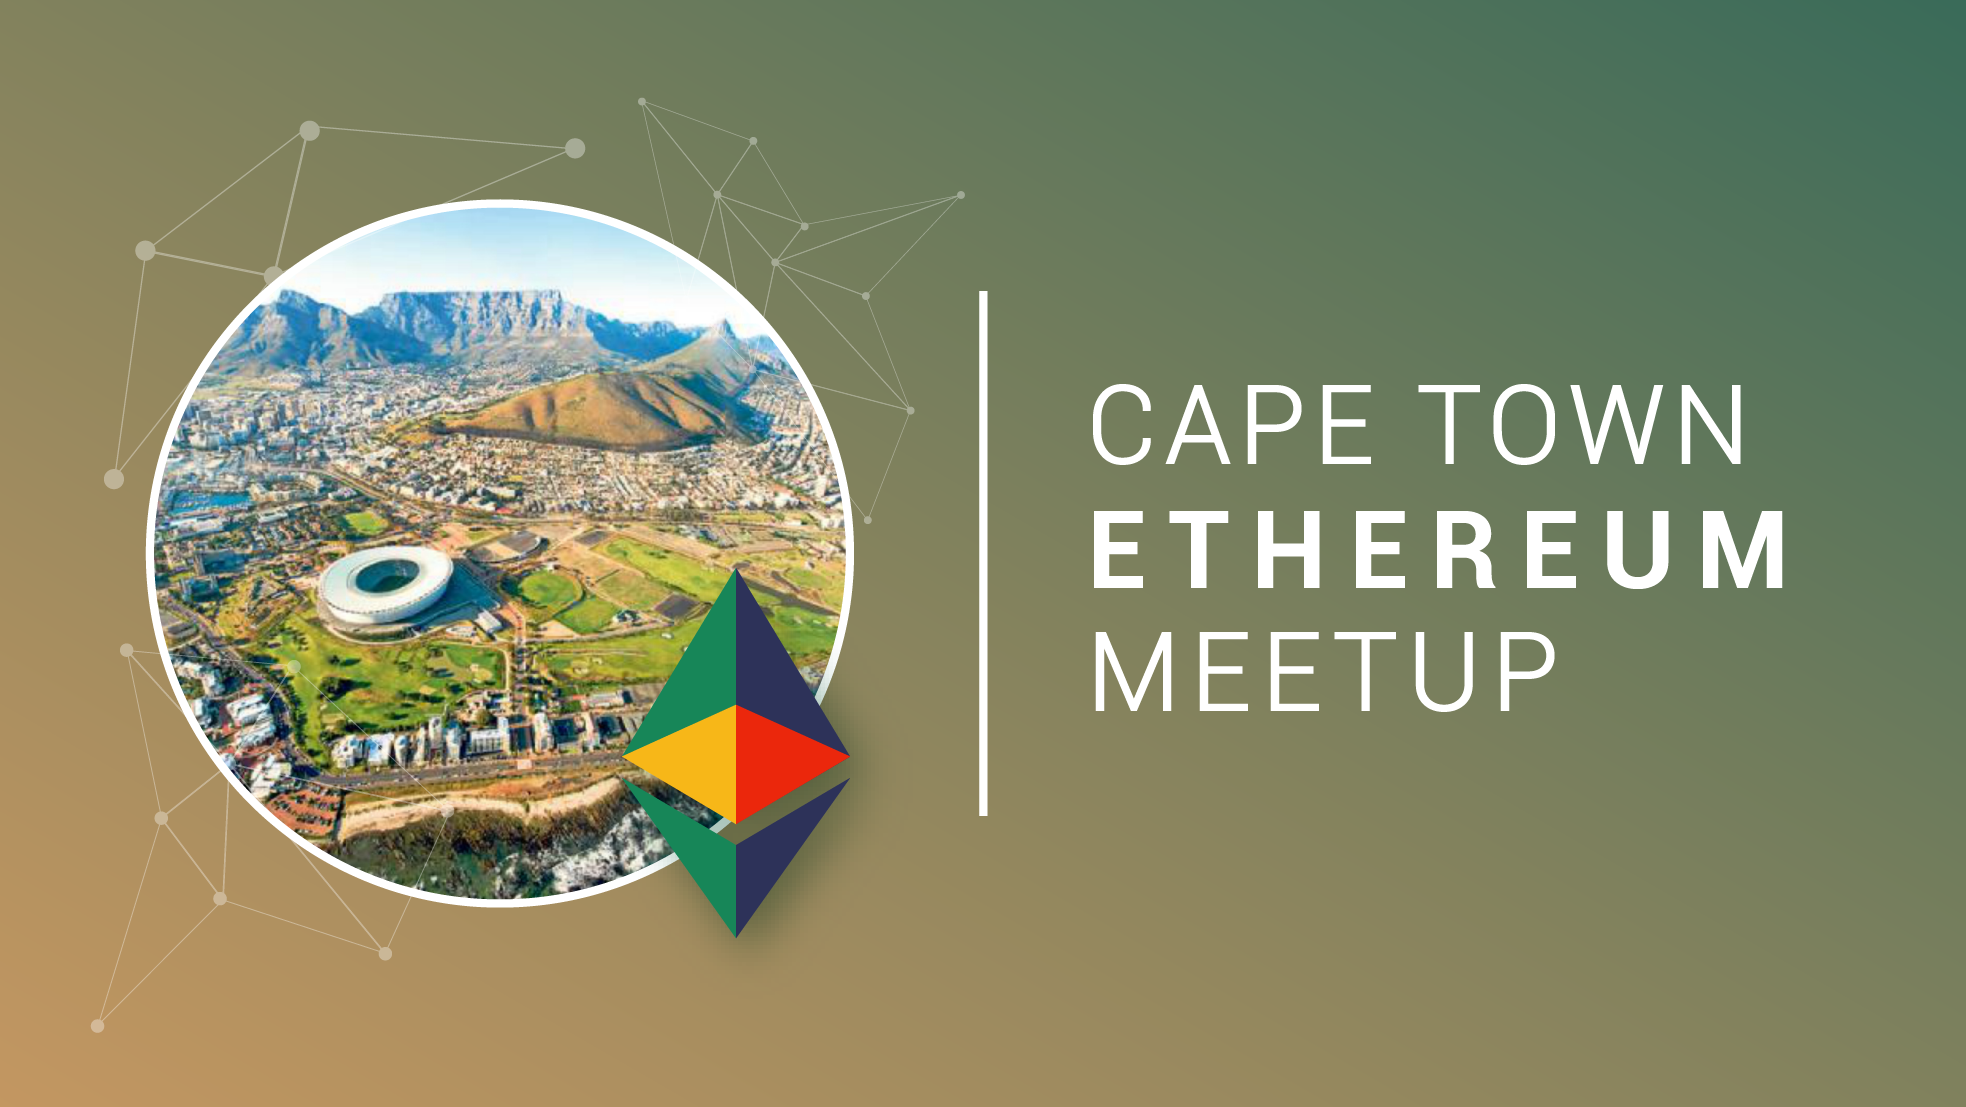 Cape Town Ethereum Meetup